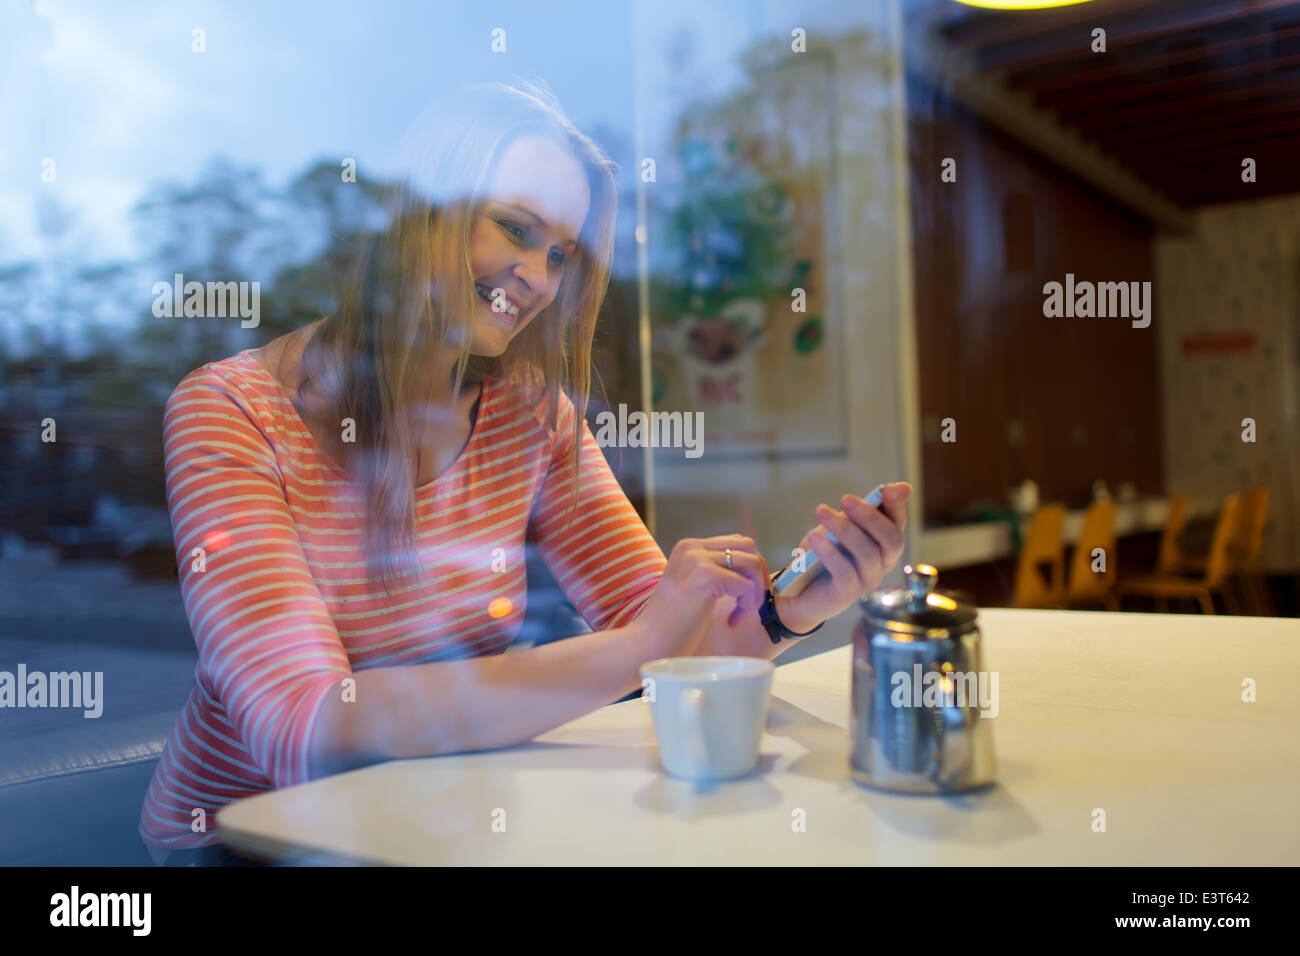 Young woman using a mobile phone in a cafeteria - Stock Image